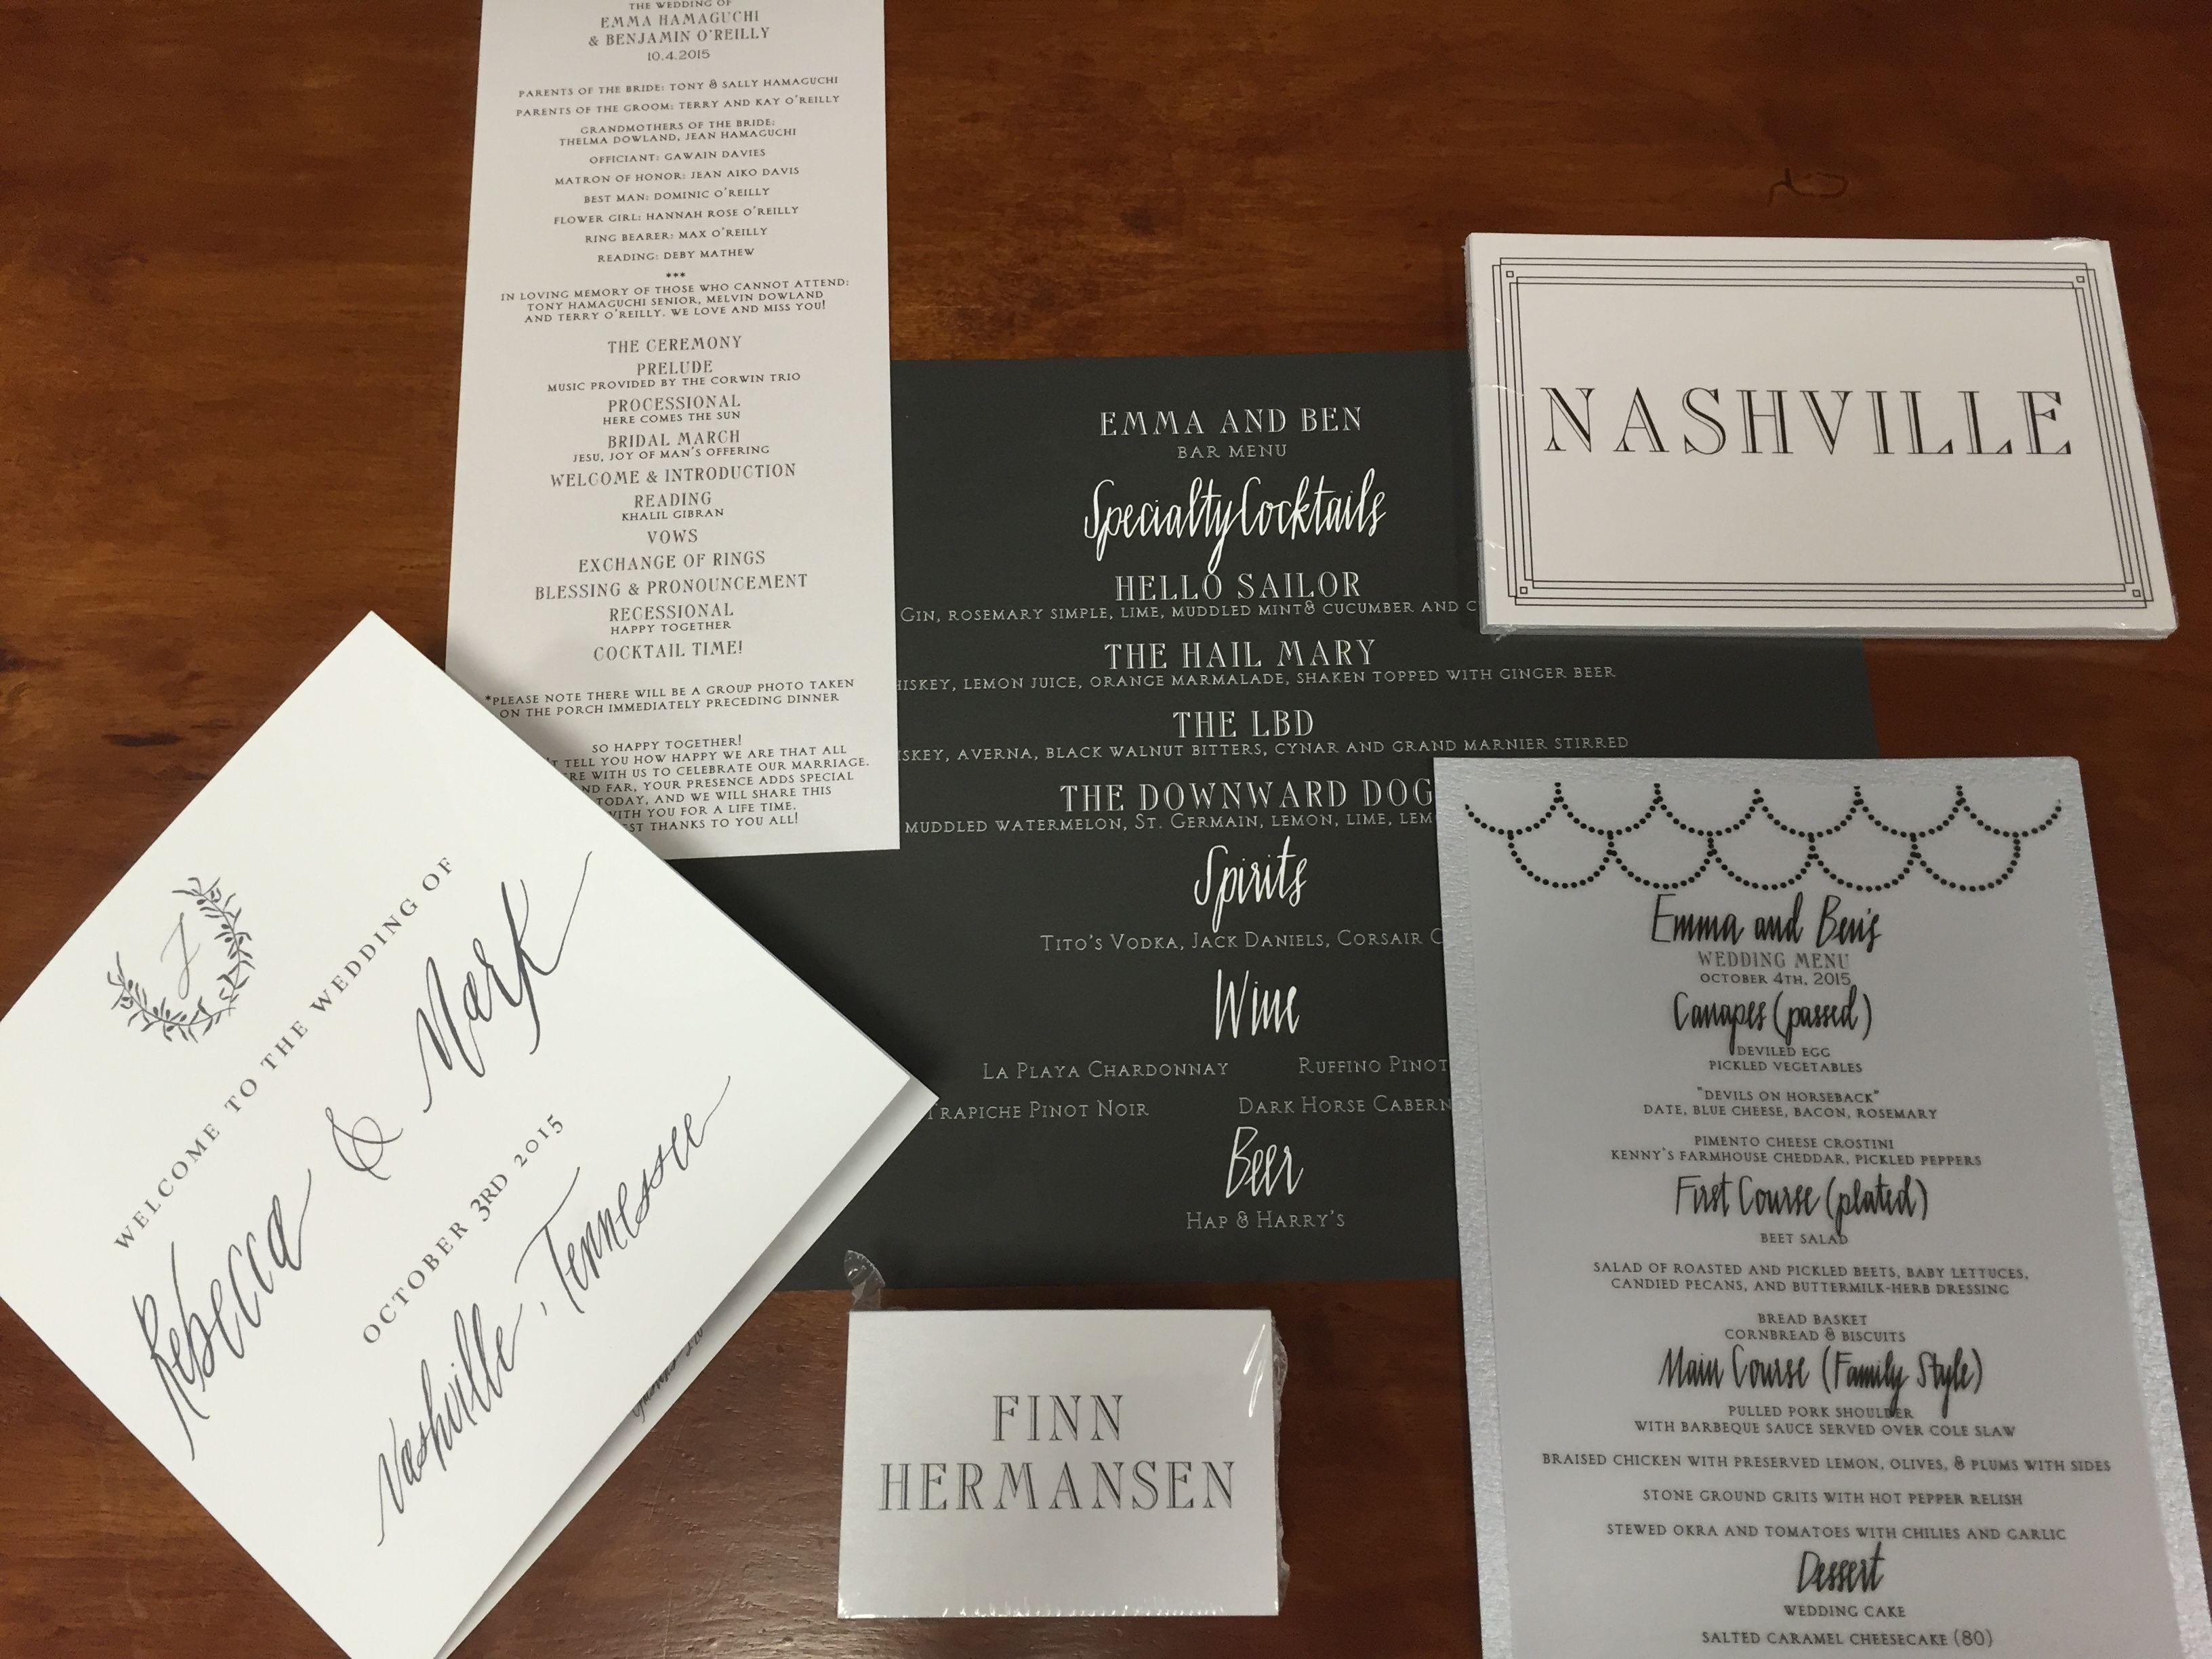 Wedding invites, menu, cards, itinerary and program. Black and white colors